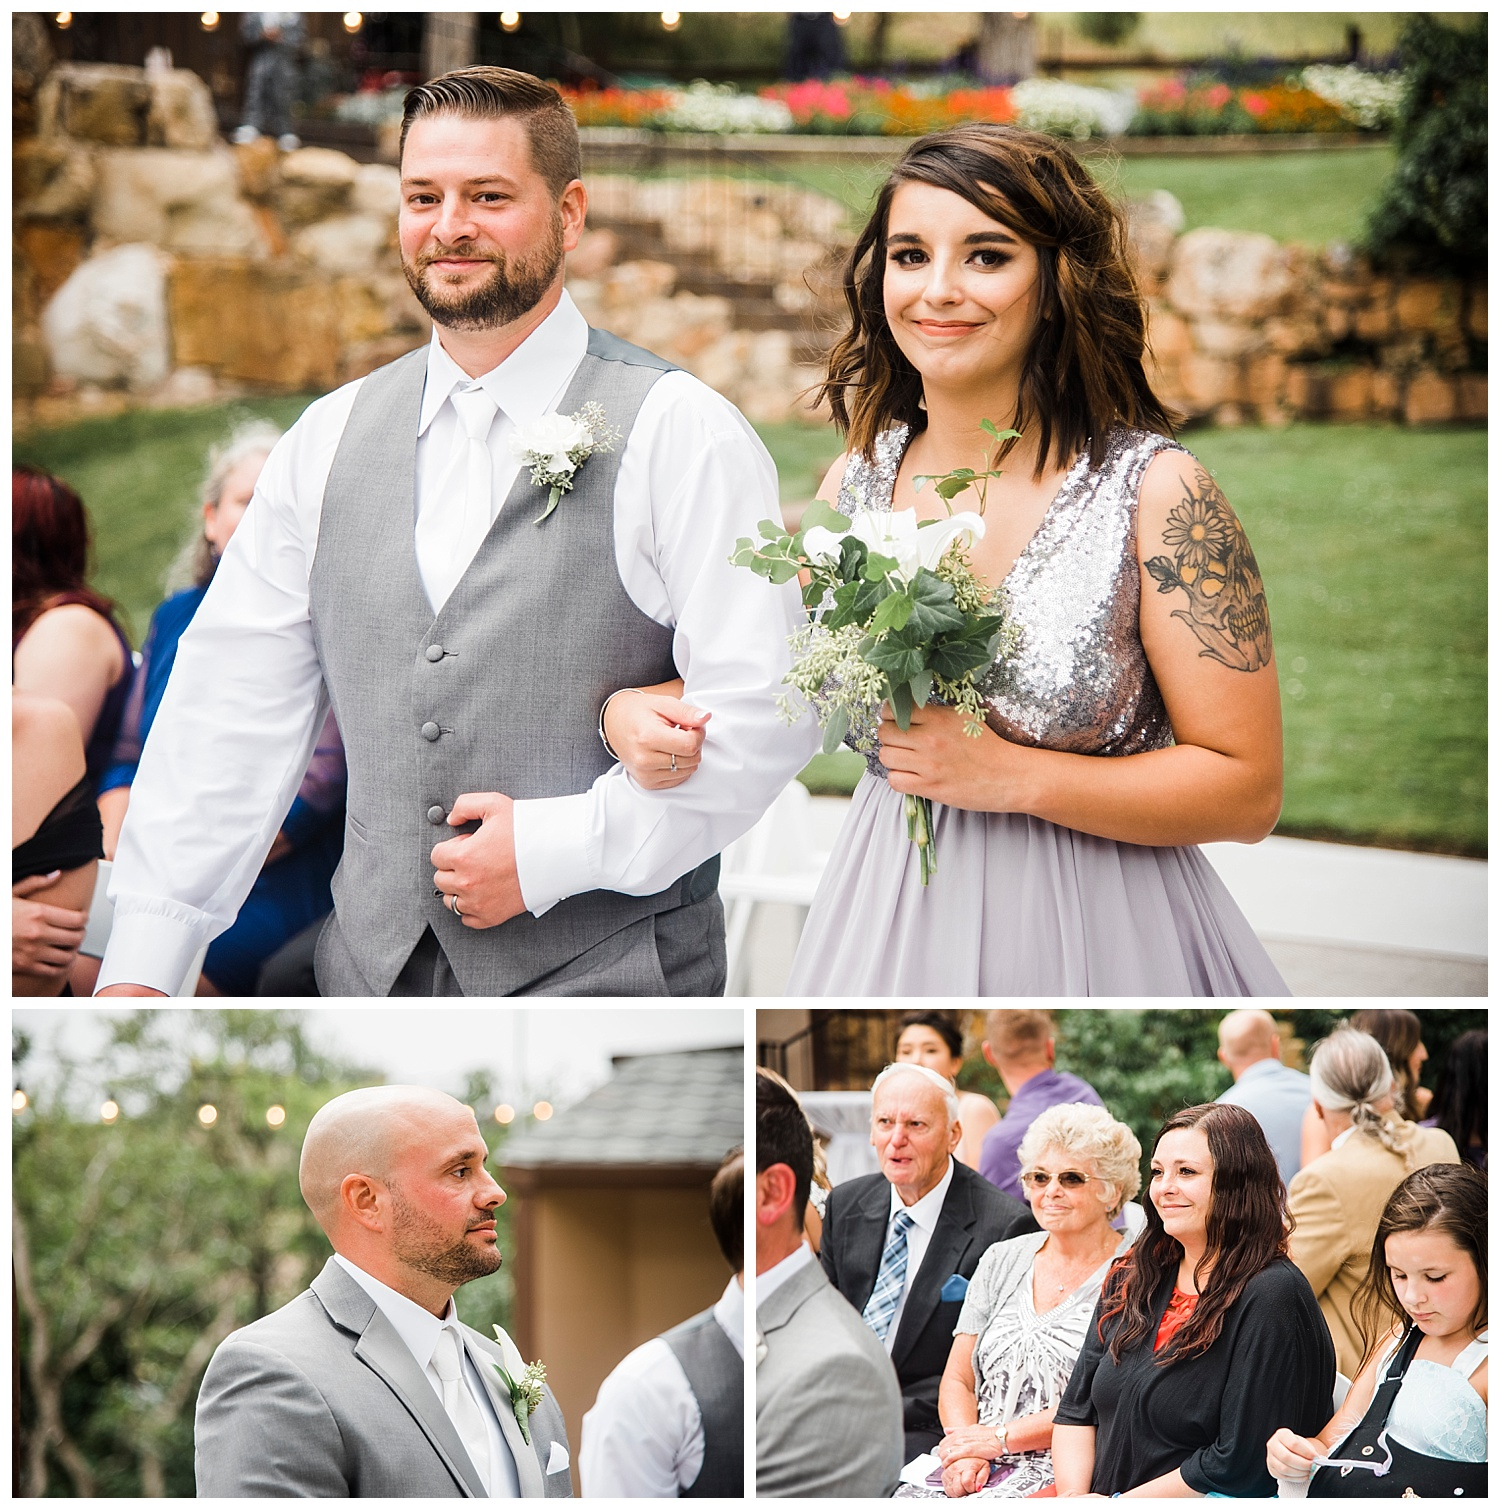 Perry_Park_Country_Club_Wedding_Larkspur_Colorado_Apollo_Fields_09.jpg